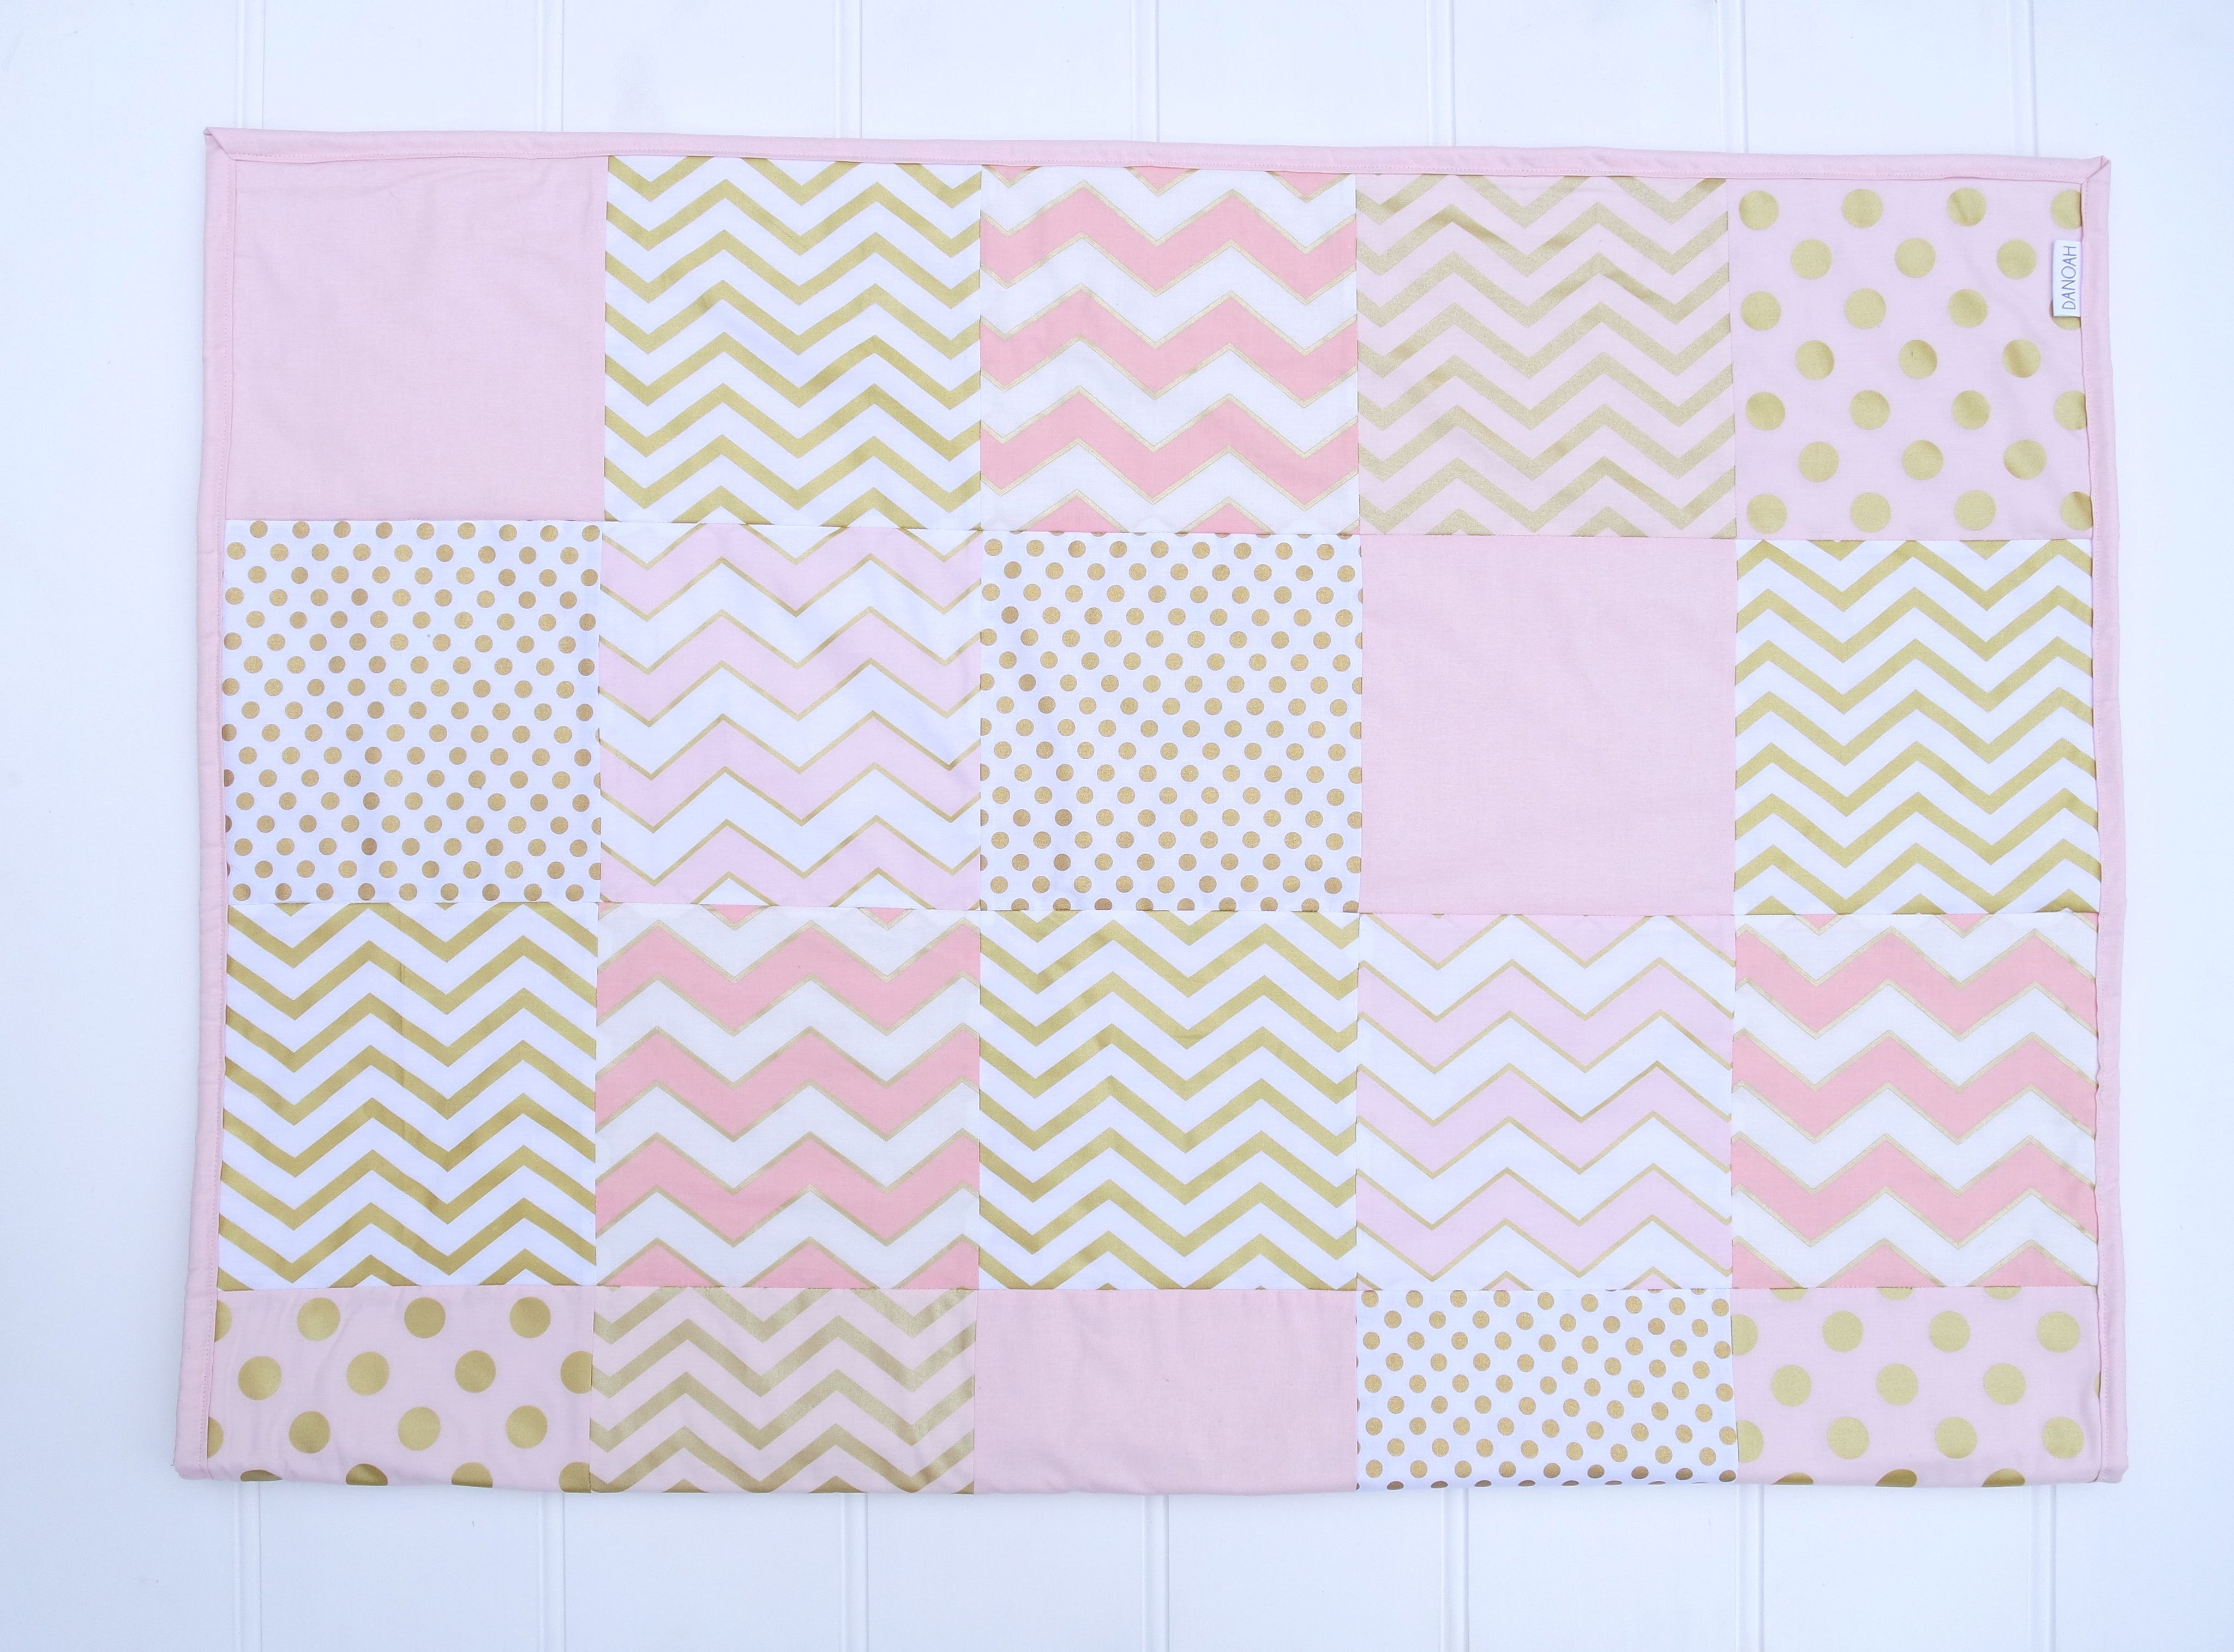 Pink & Gold Glam Patchwork Quilt